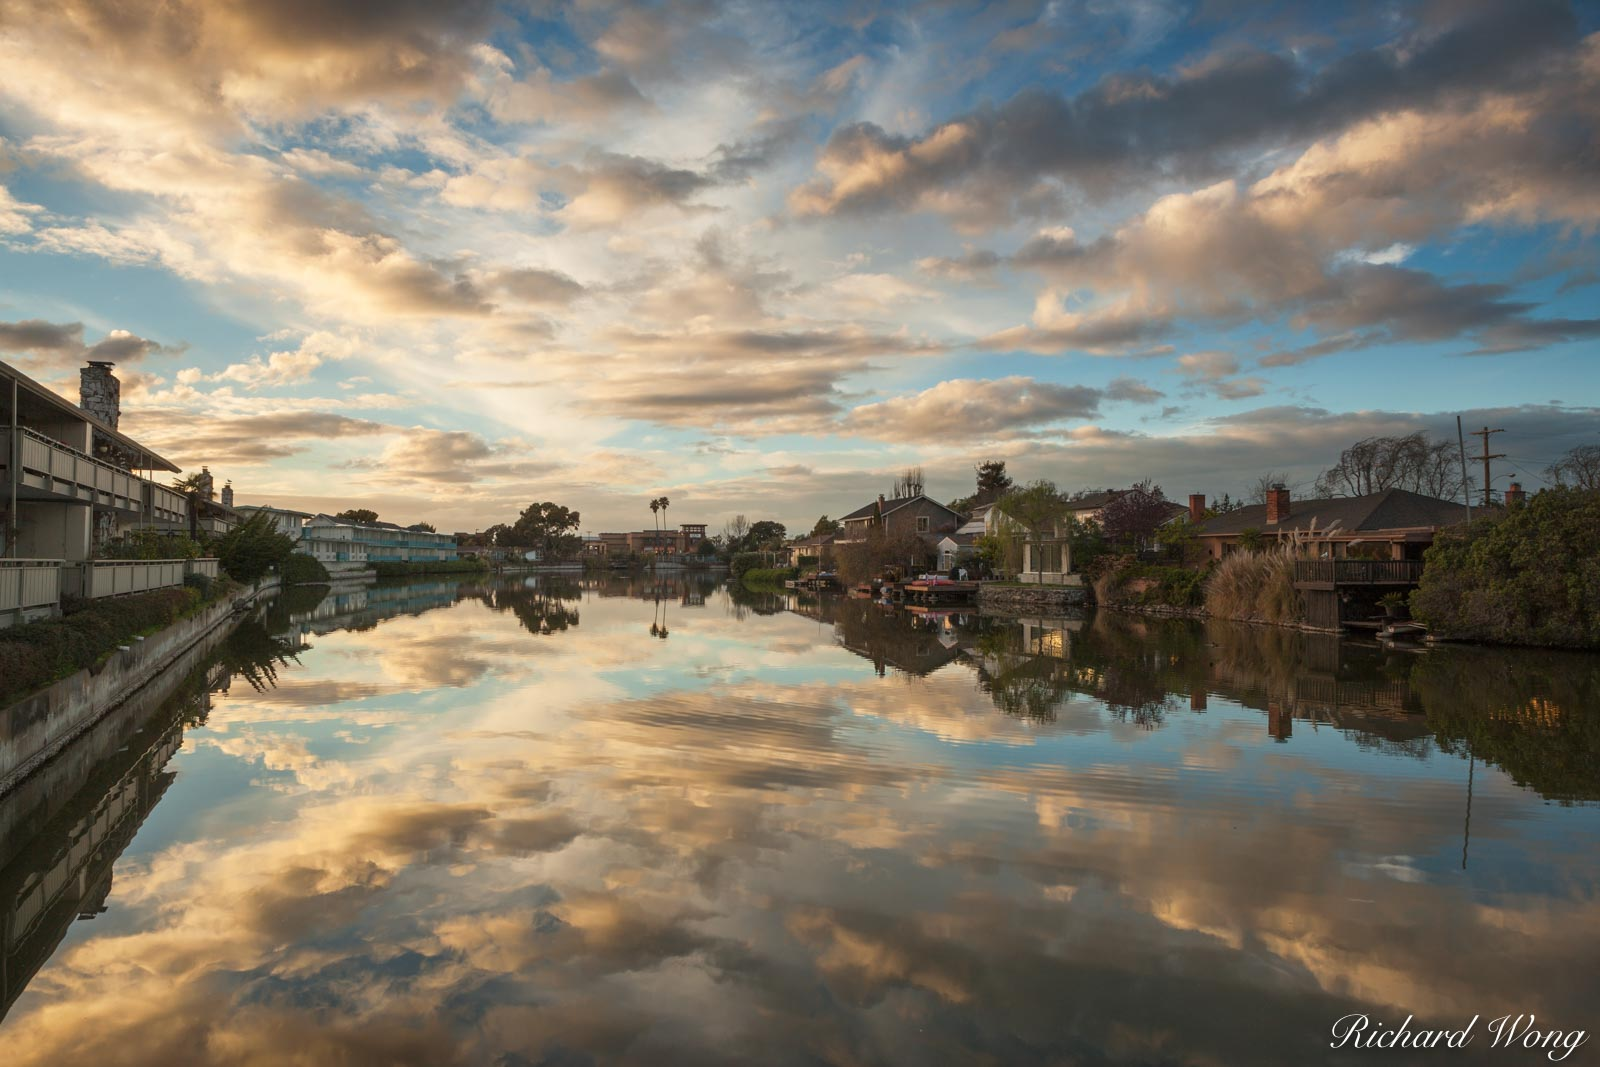 alameda, city, clouds, homes, lagoon, landscape, mirror, mirrored, neighborhood, northern california, outdoor, outside, reflected, residential, san francisco east bay, scenic, south shore, sunset, tra, photo